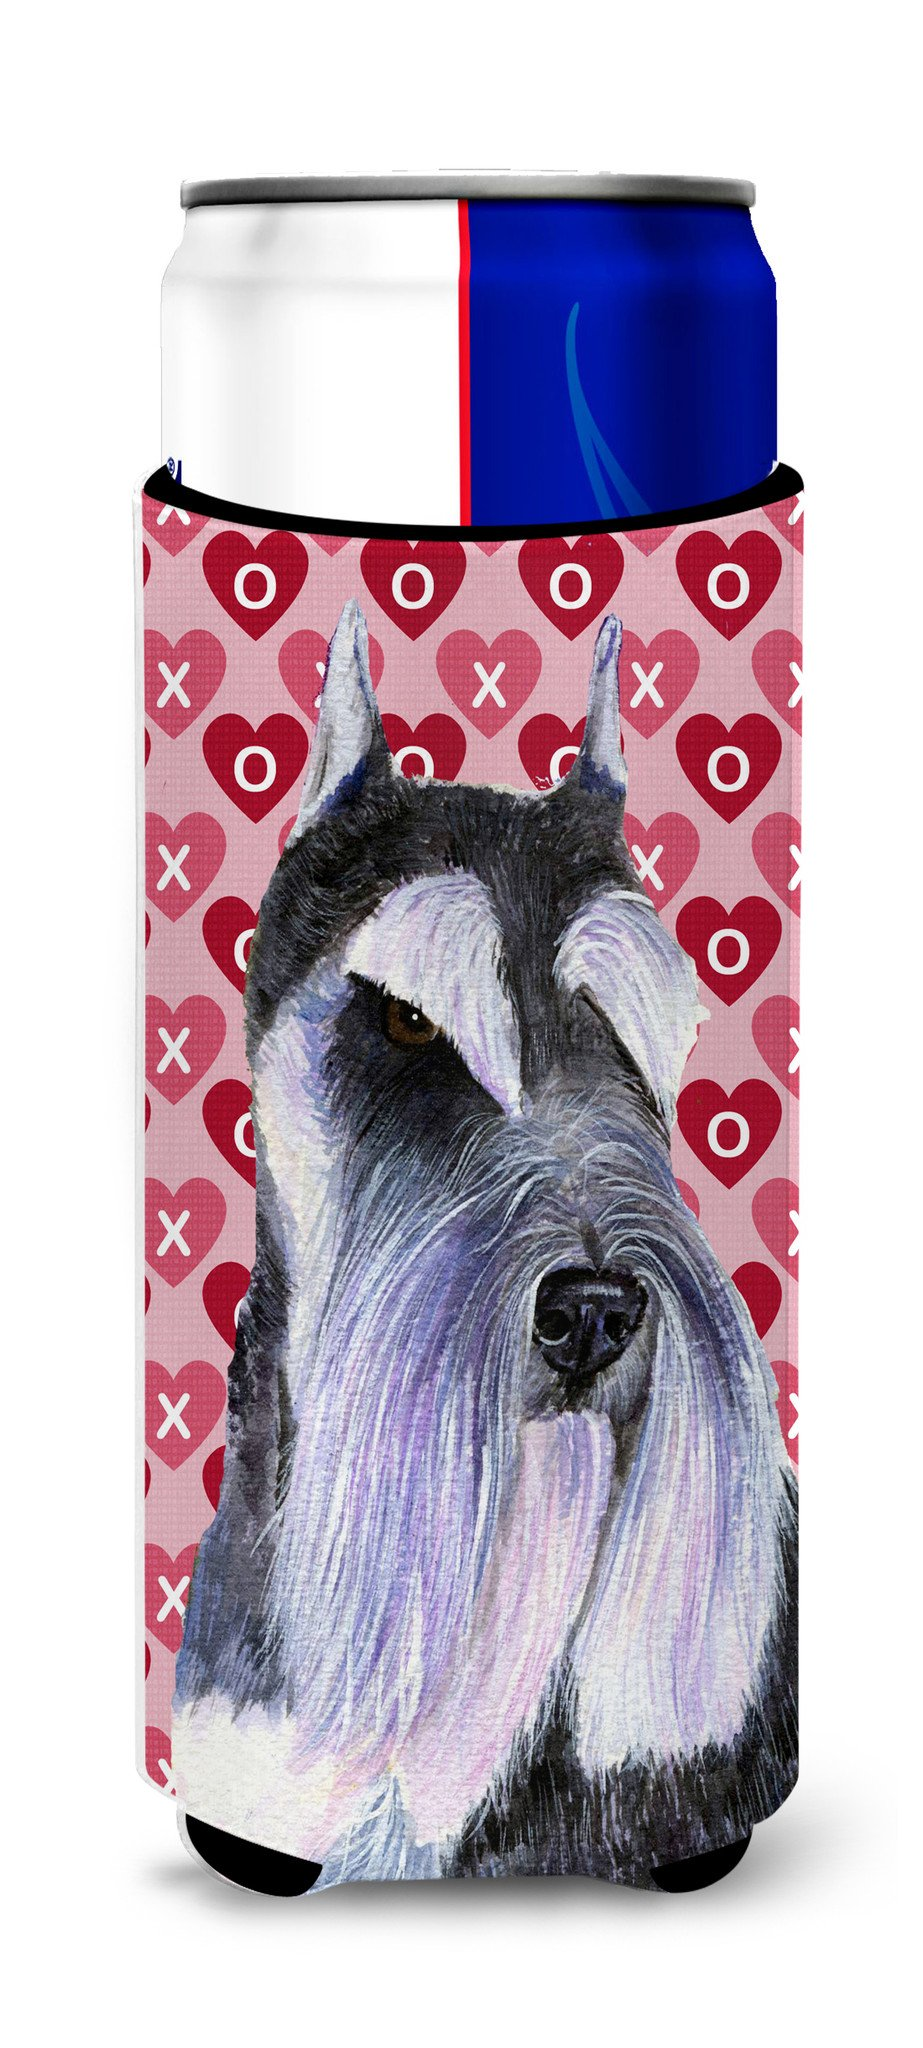 Schnauzer Hearts Love and Valentine's Day Portrait Ultra Beverage Insulators for slim cans SS4477MUK by Caroline's Treasures